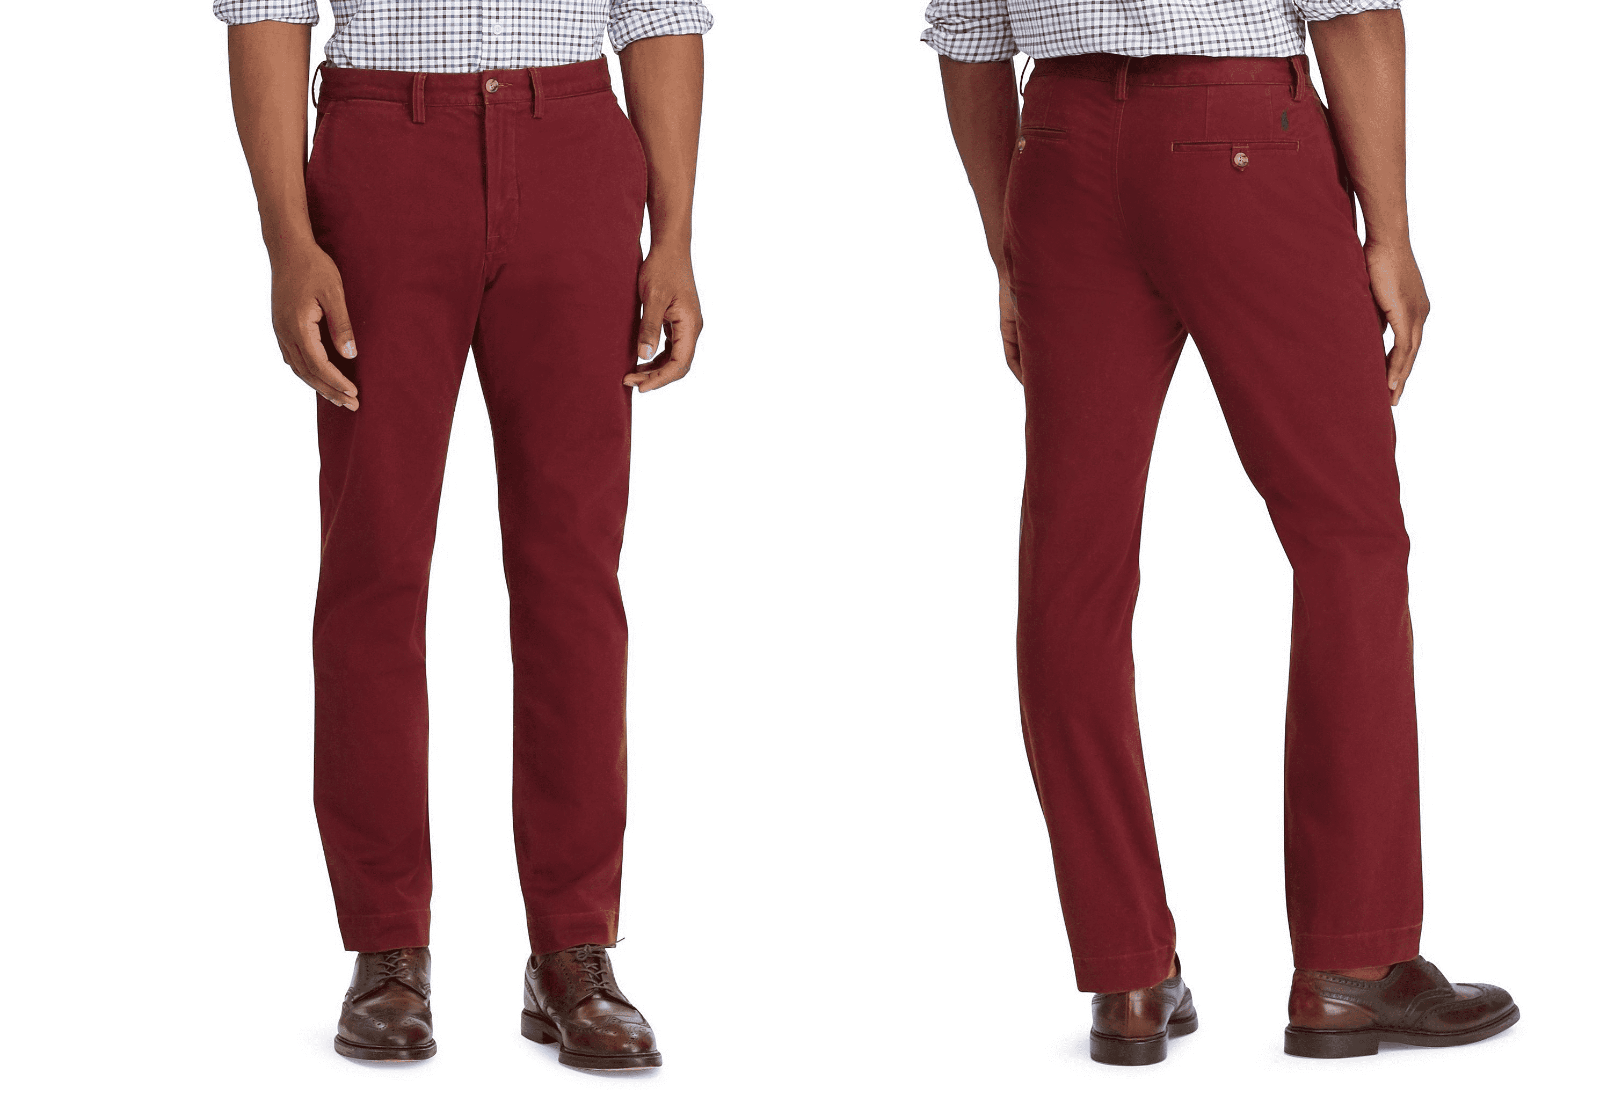 Polo Ralph Lauren Men's Classic Fit Chino Pants, Red, Size 32X32,MSRP $85 - $49.49